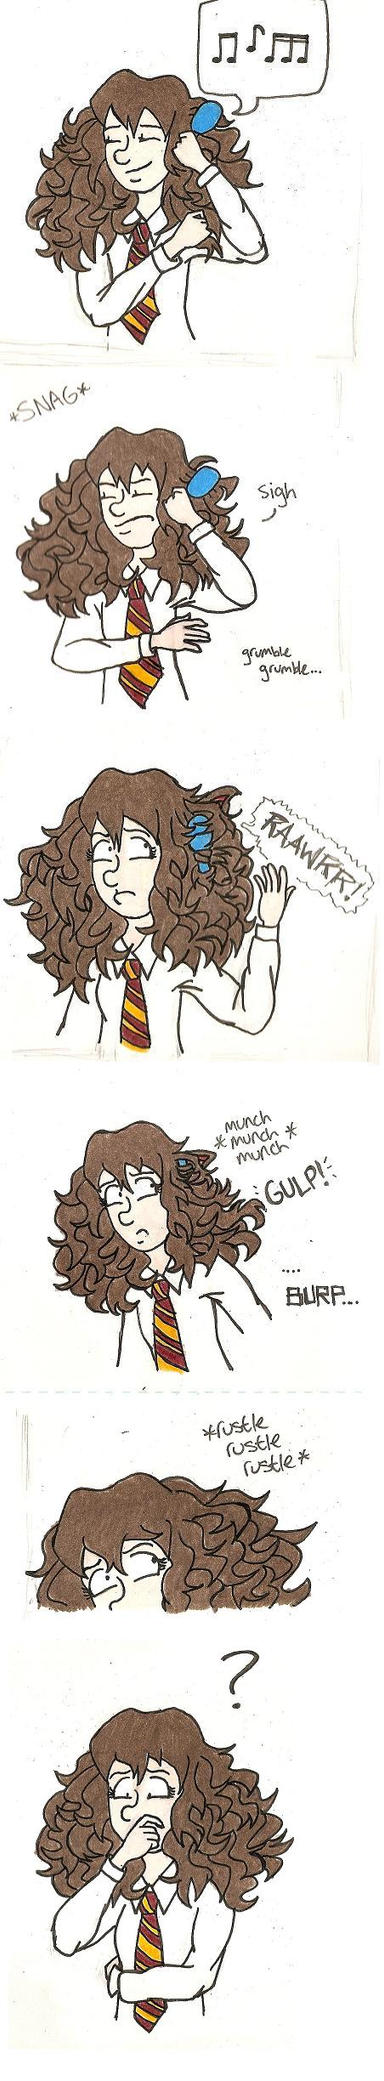 Hermione's Hair Problem by quintessence424